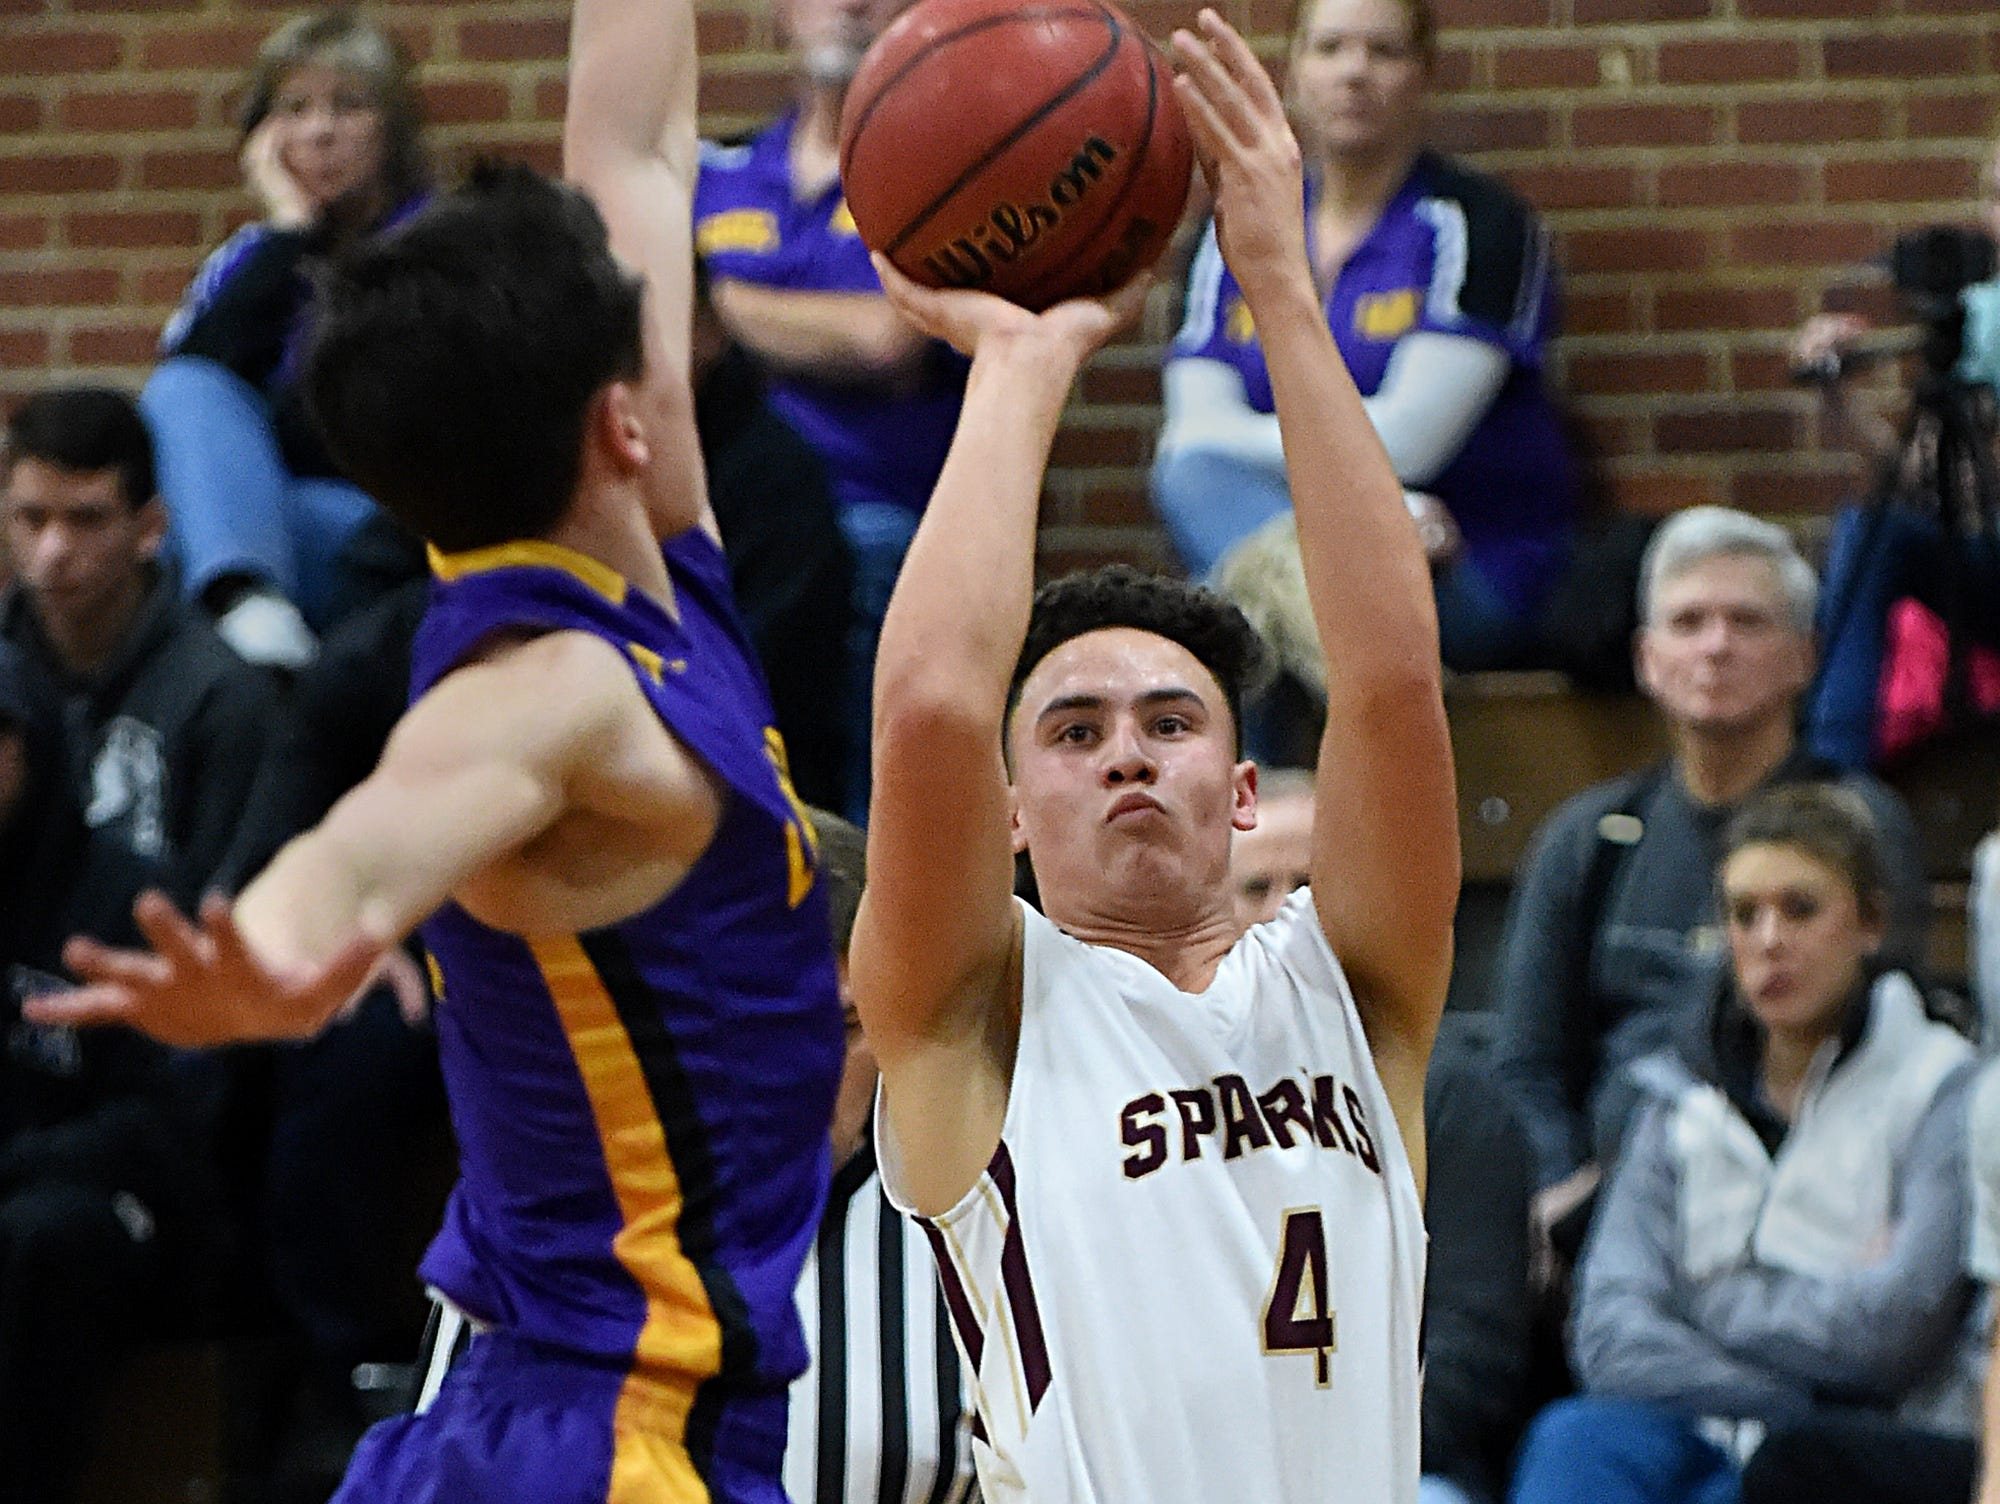 Sparks's James Bates shoots with Lassen's Kevin Barnetche looking to block during Tuesday's game at Sparks.